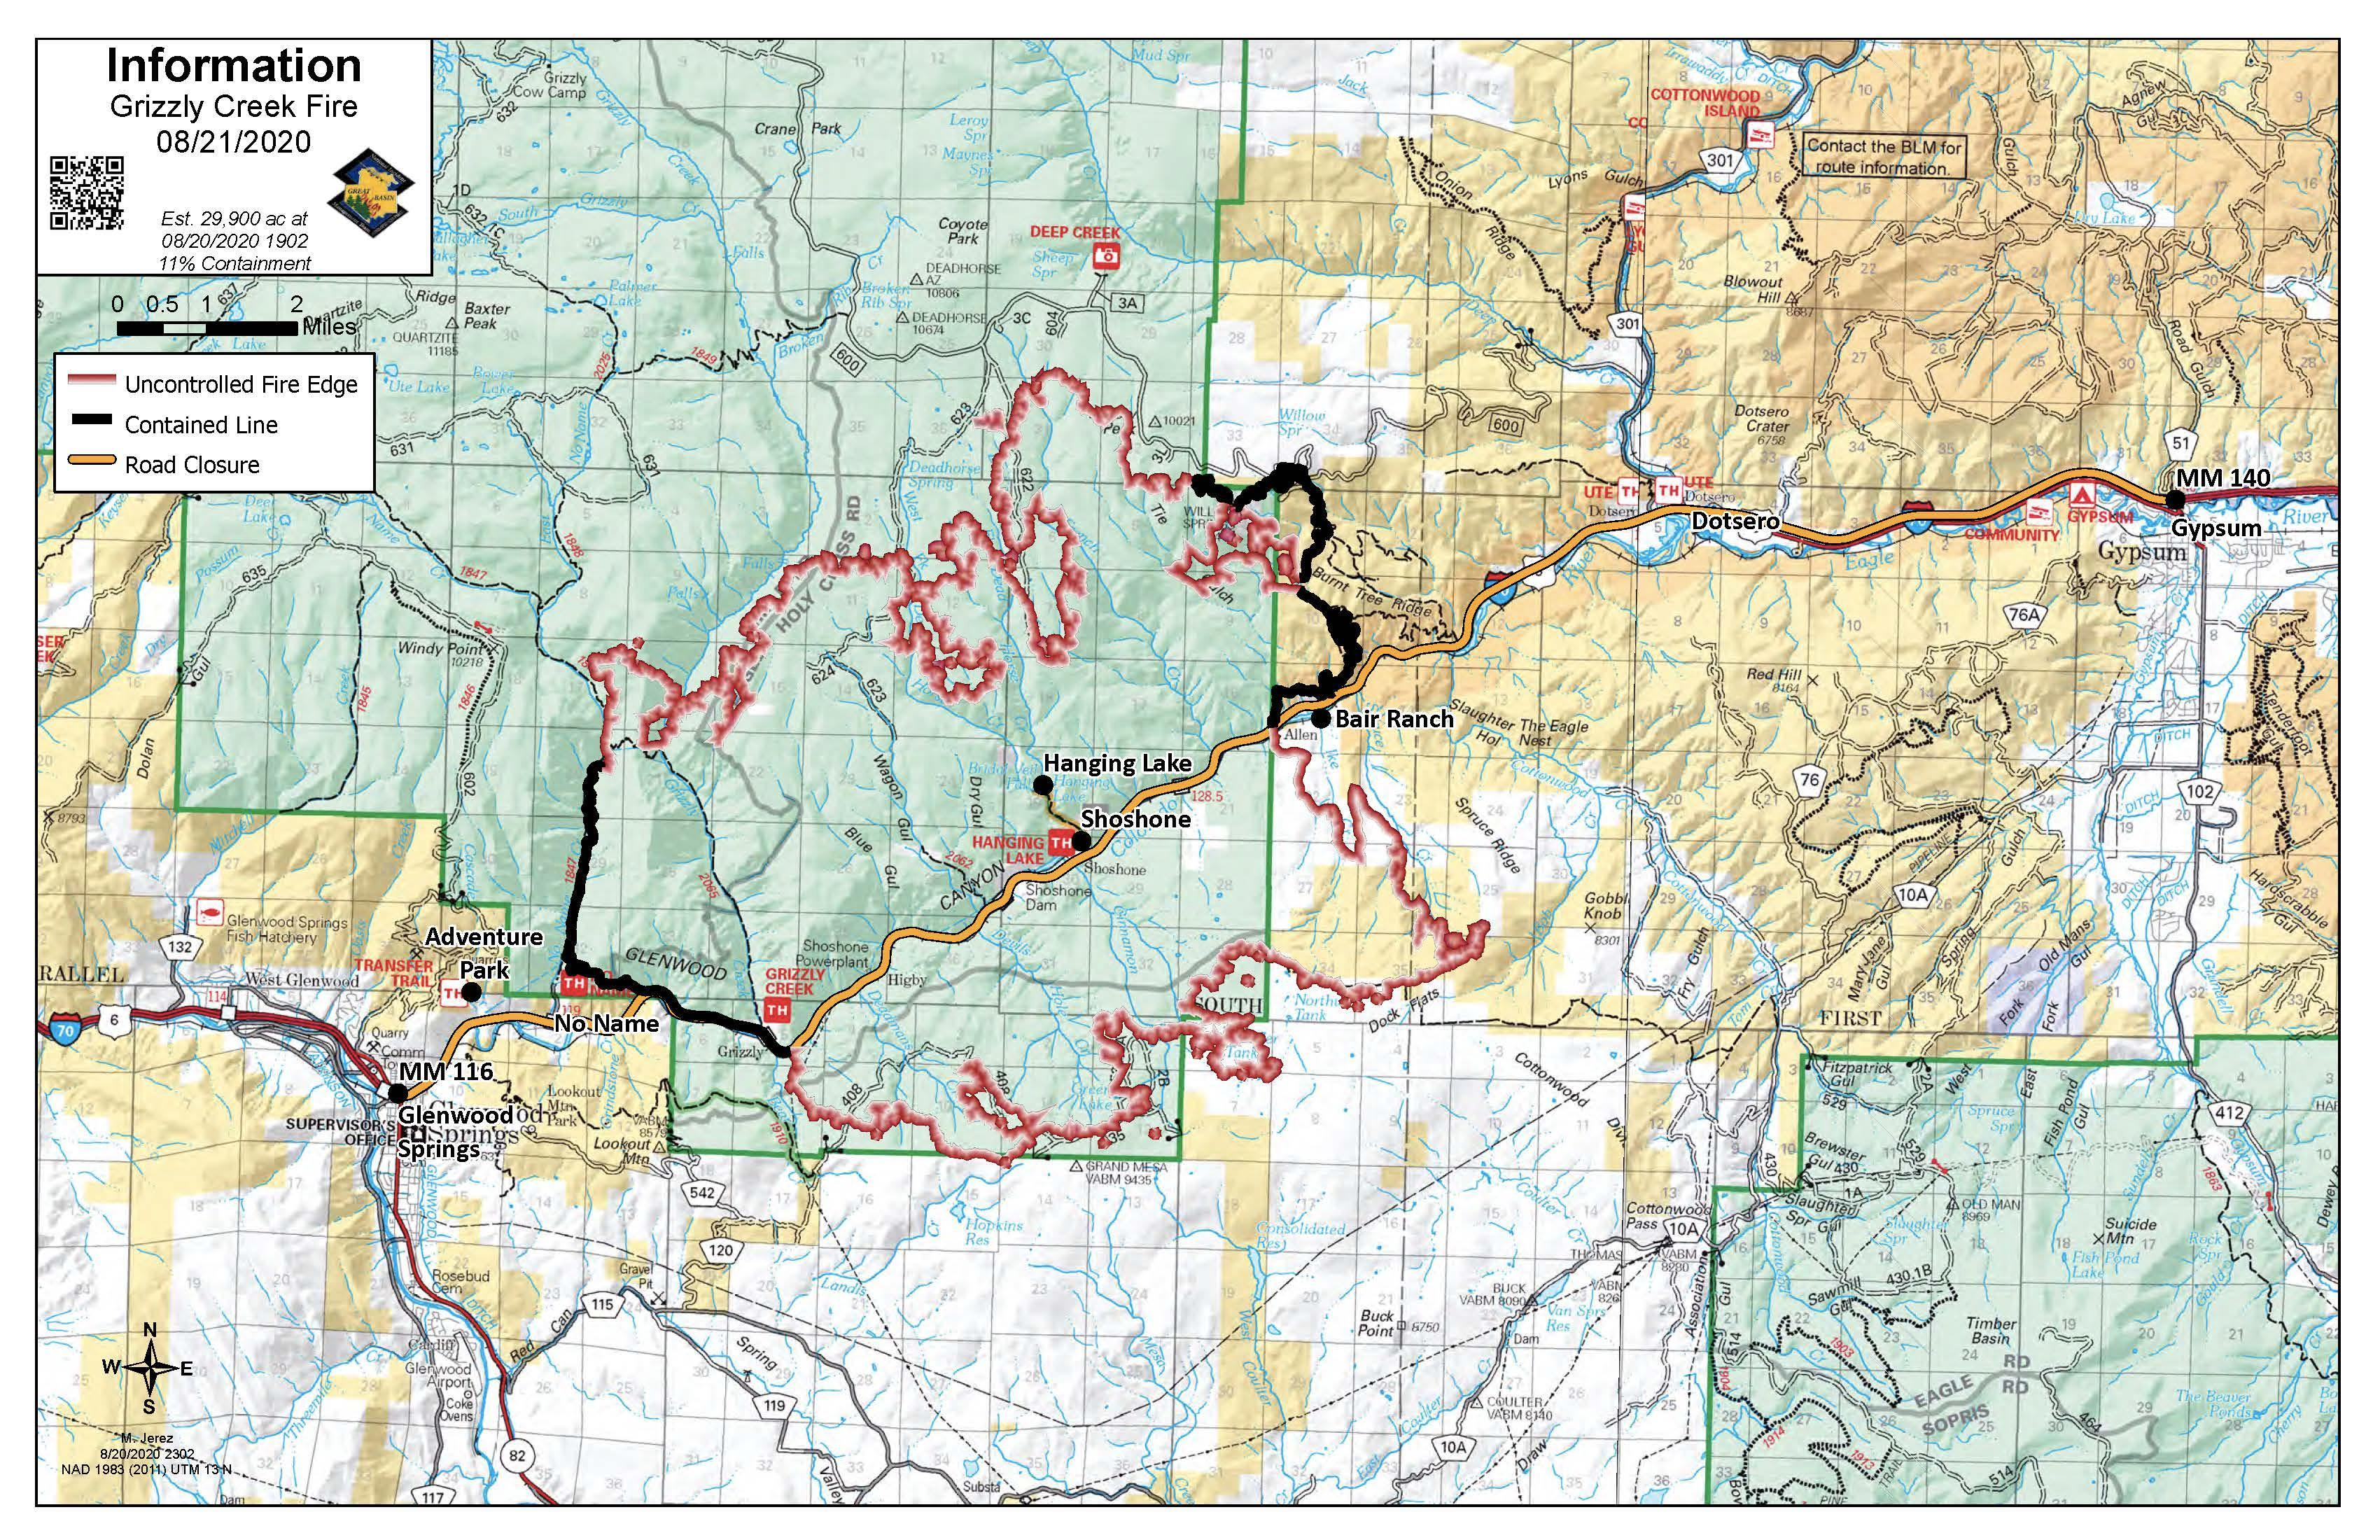 Uncontained line is red over a topographic map of the area